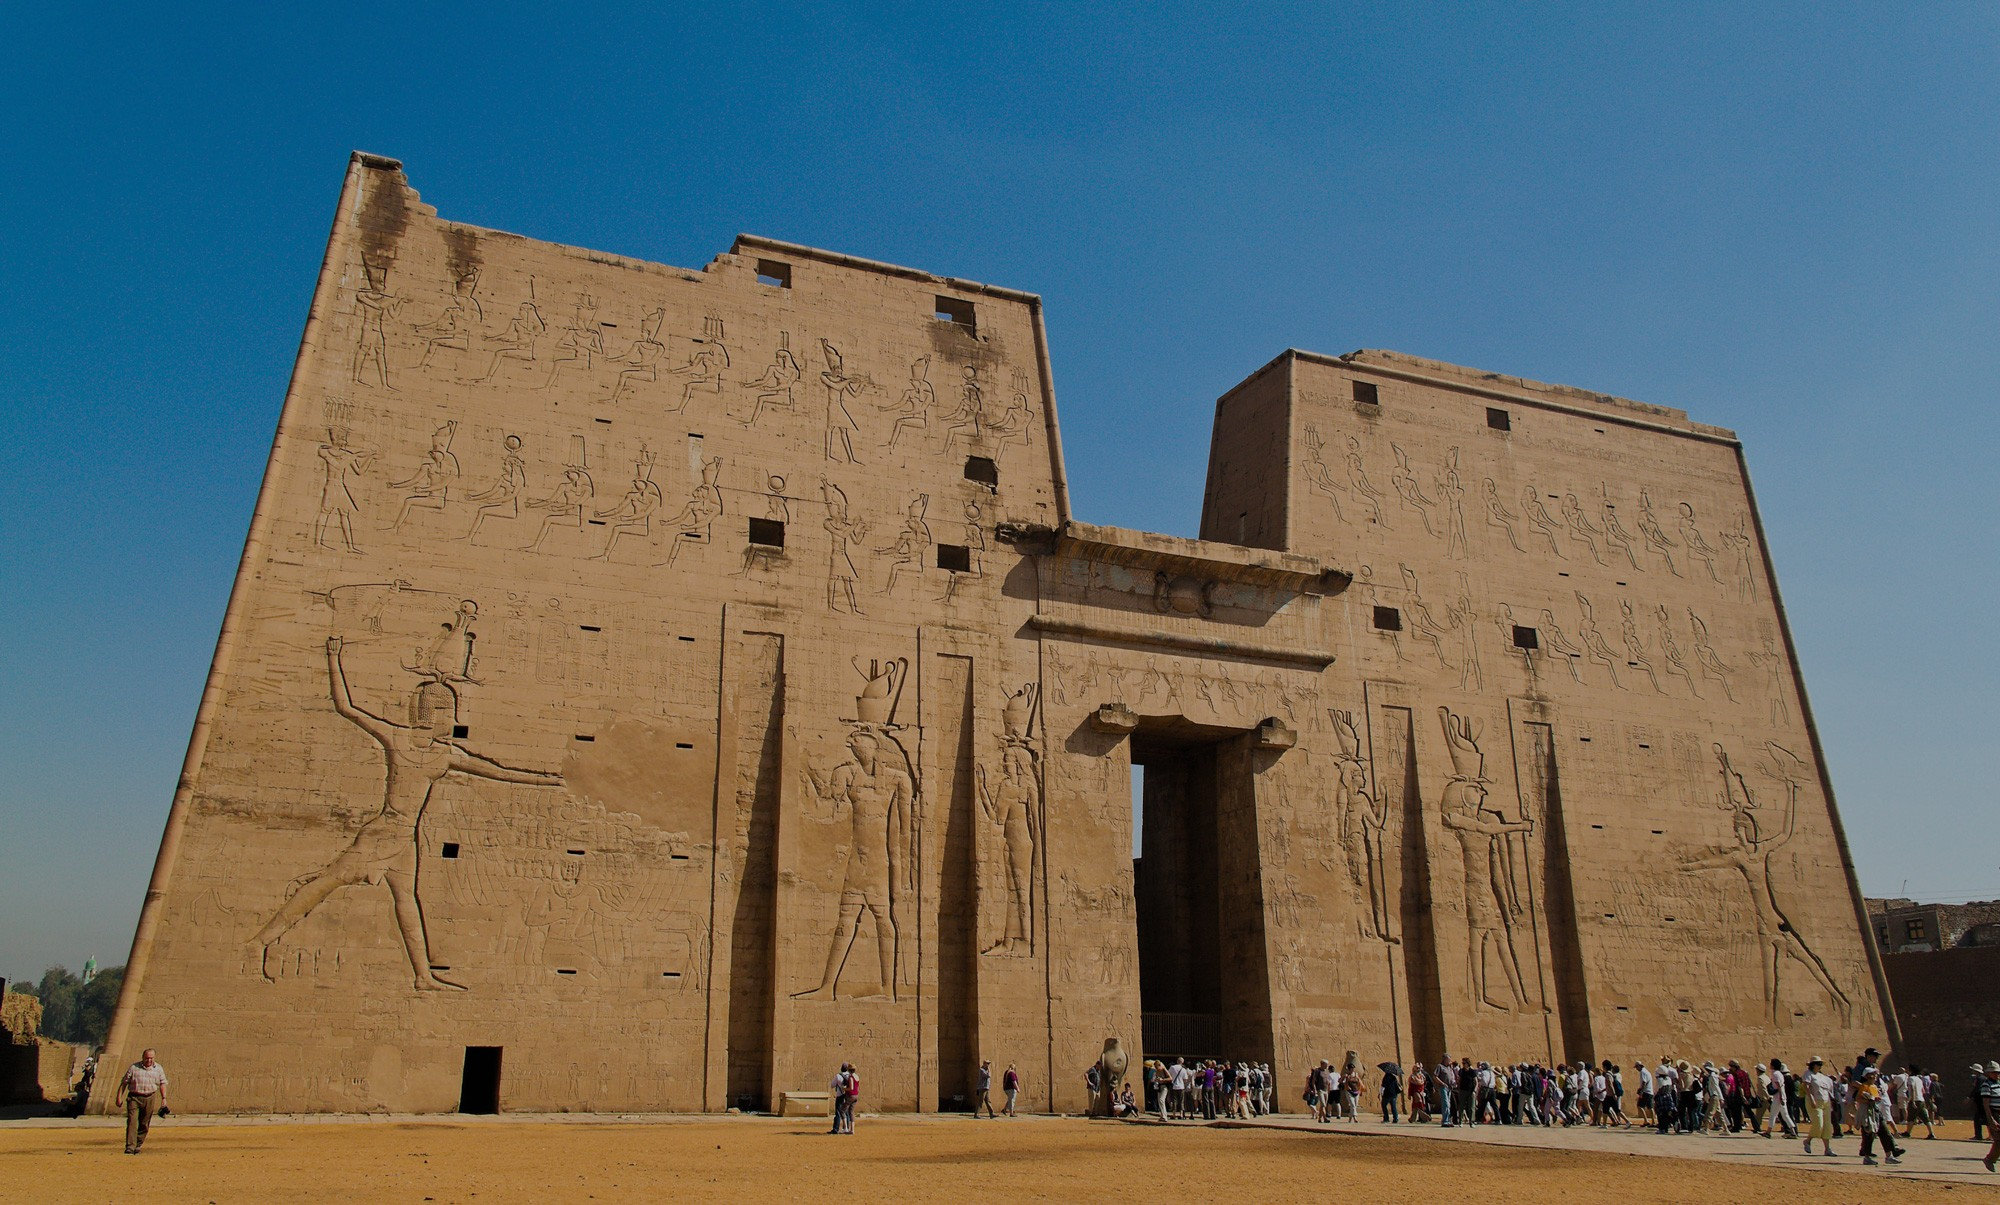 Day Tour to Edfu and Kom Ombo